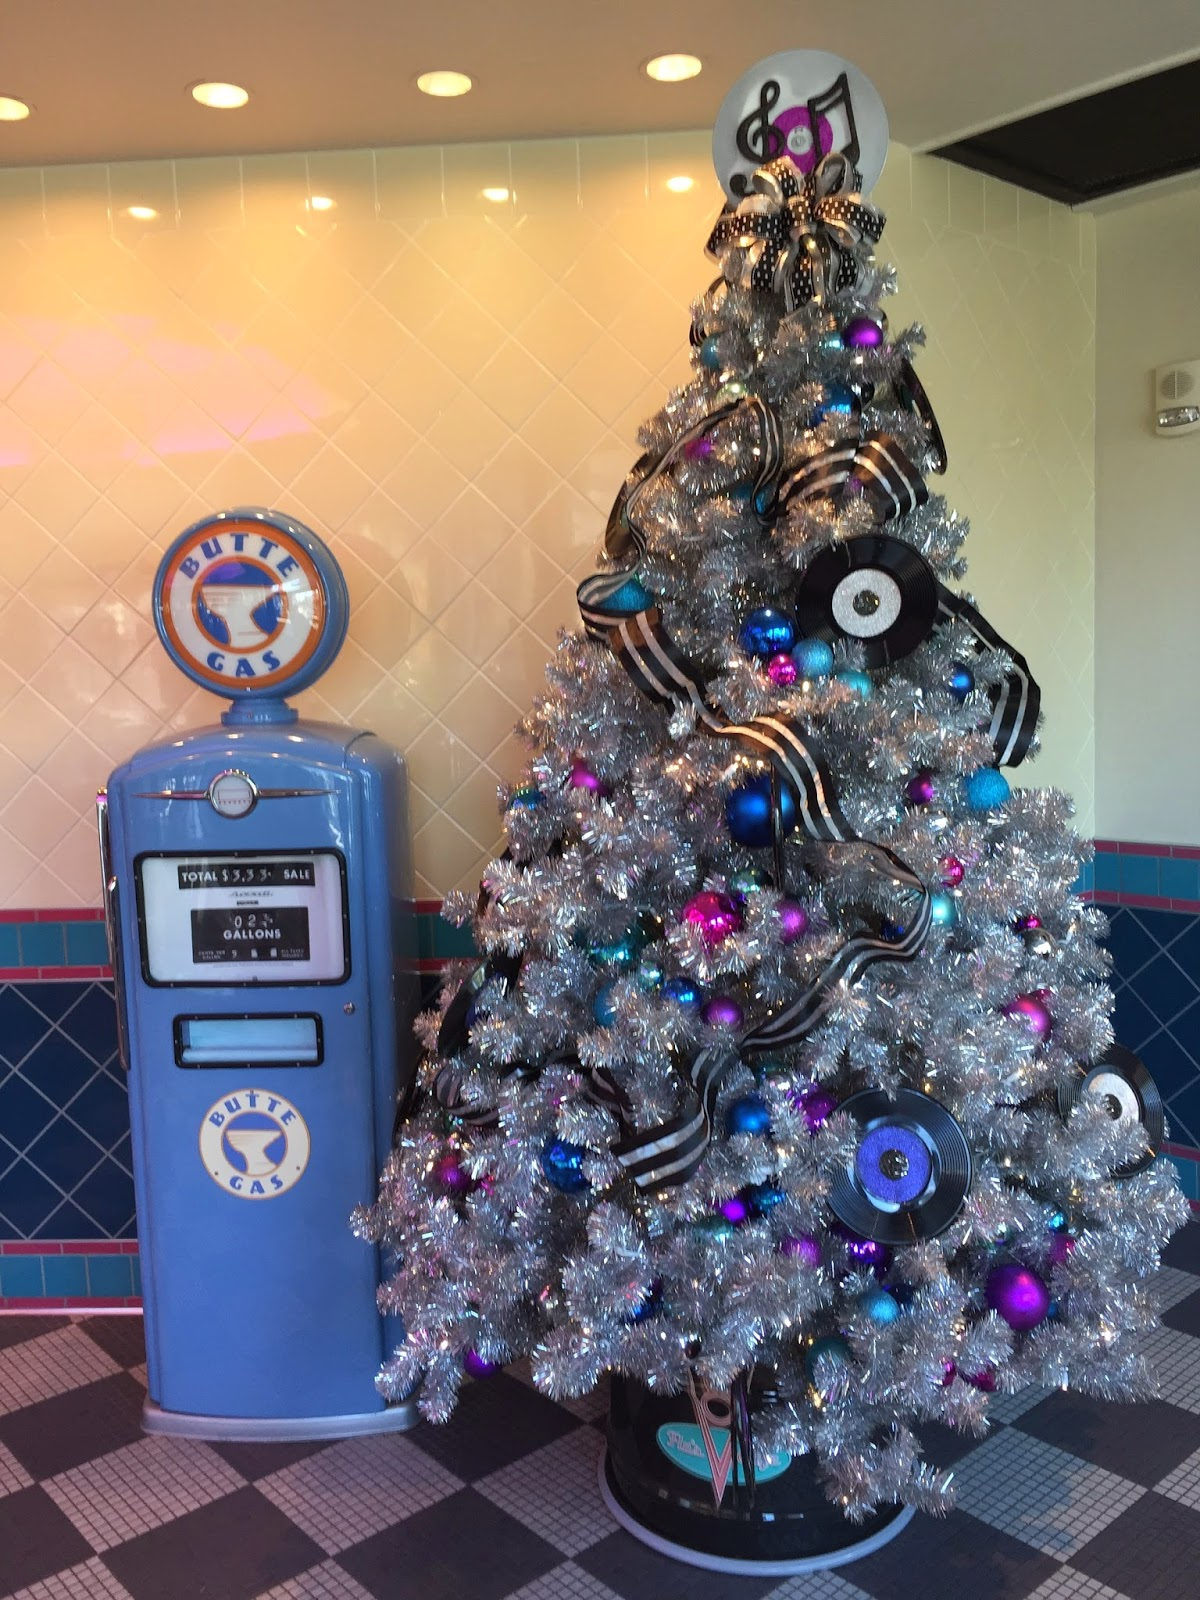 Mystery Playground Cars Land Holidays And Christmas Trees Catriona Agatha Top Handle Bag Purple The Inside Flos Cafe Have A Musical Feel Tree Outside Has Motor Oil For All I Dont Usually Put On My